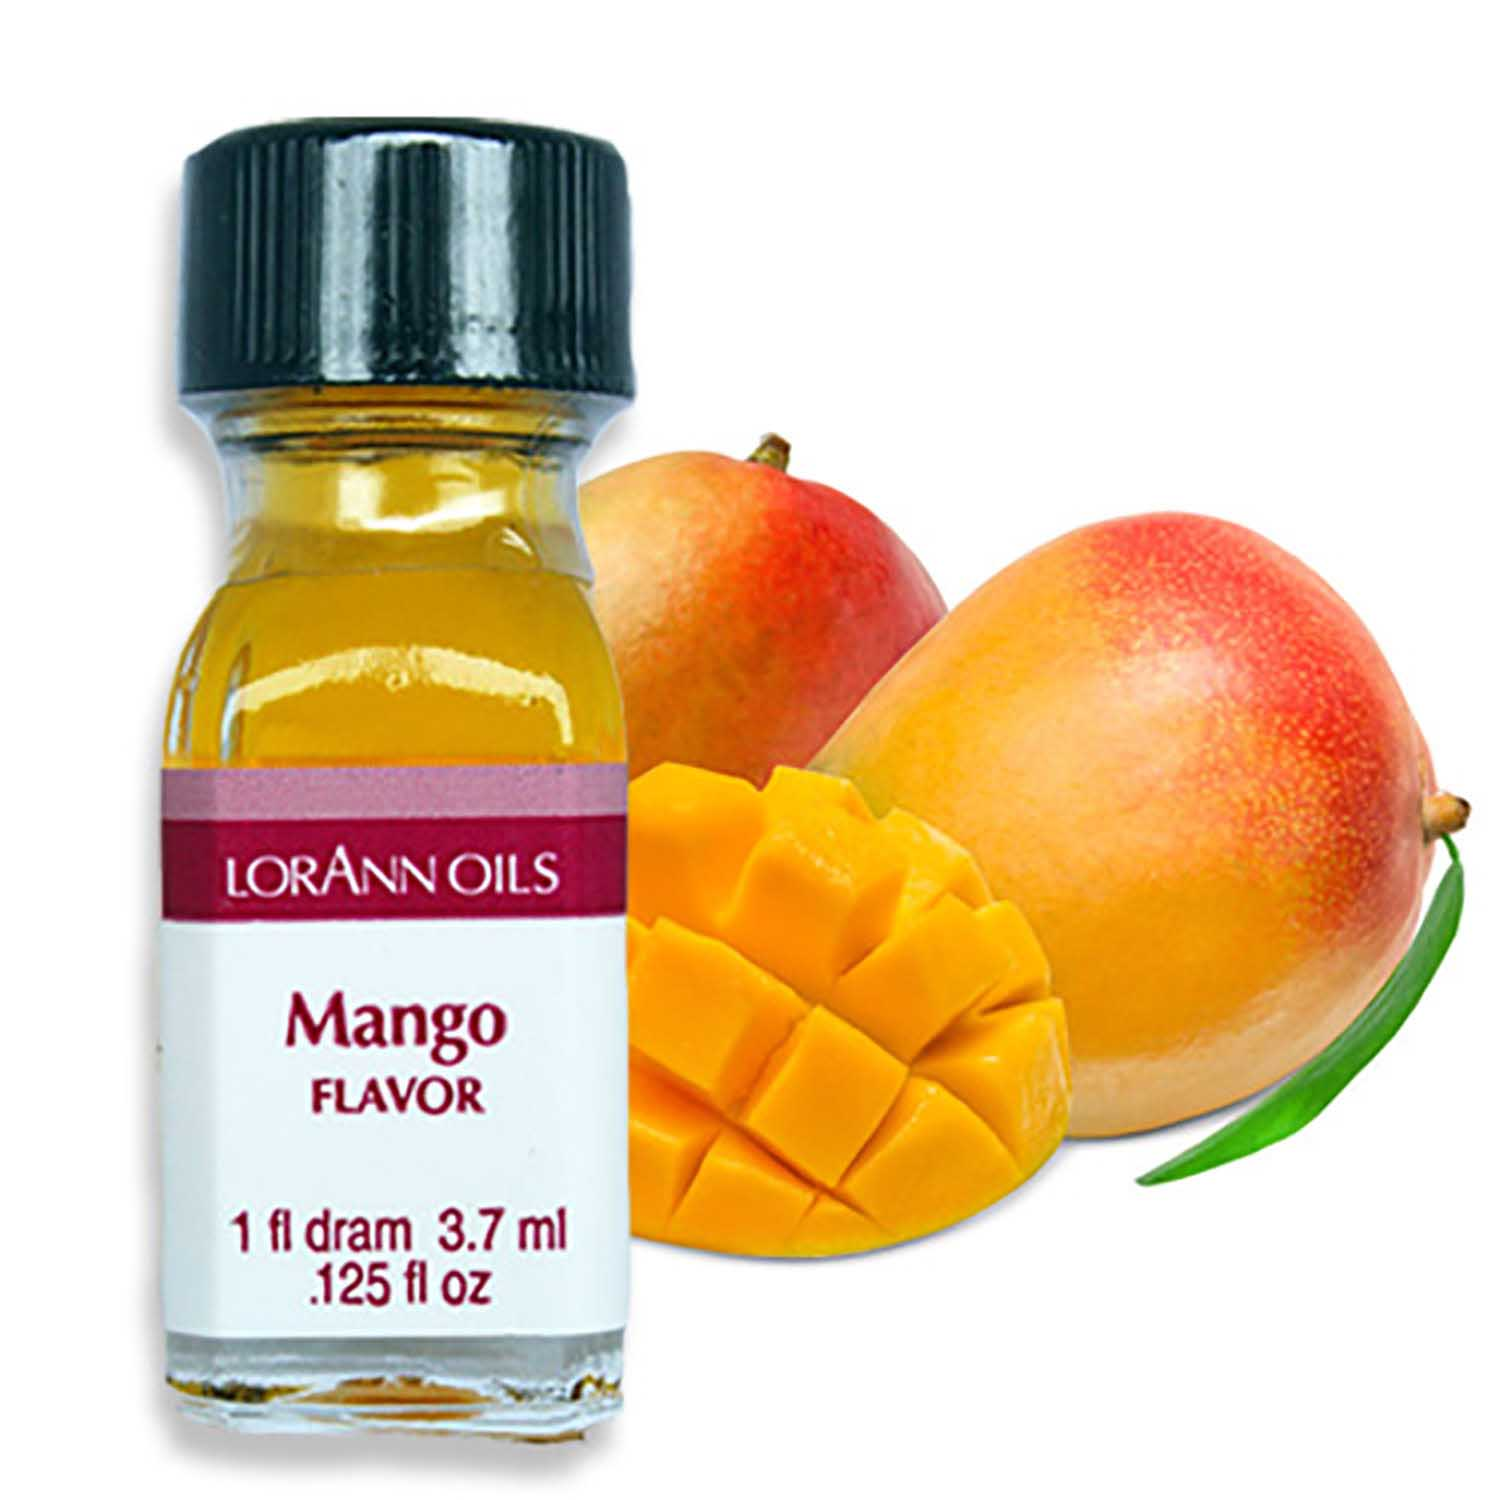 Mango LorAnn Super-Strength Flavor